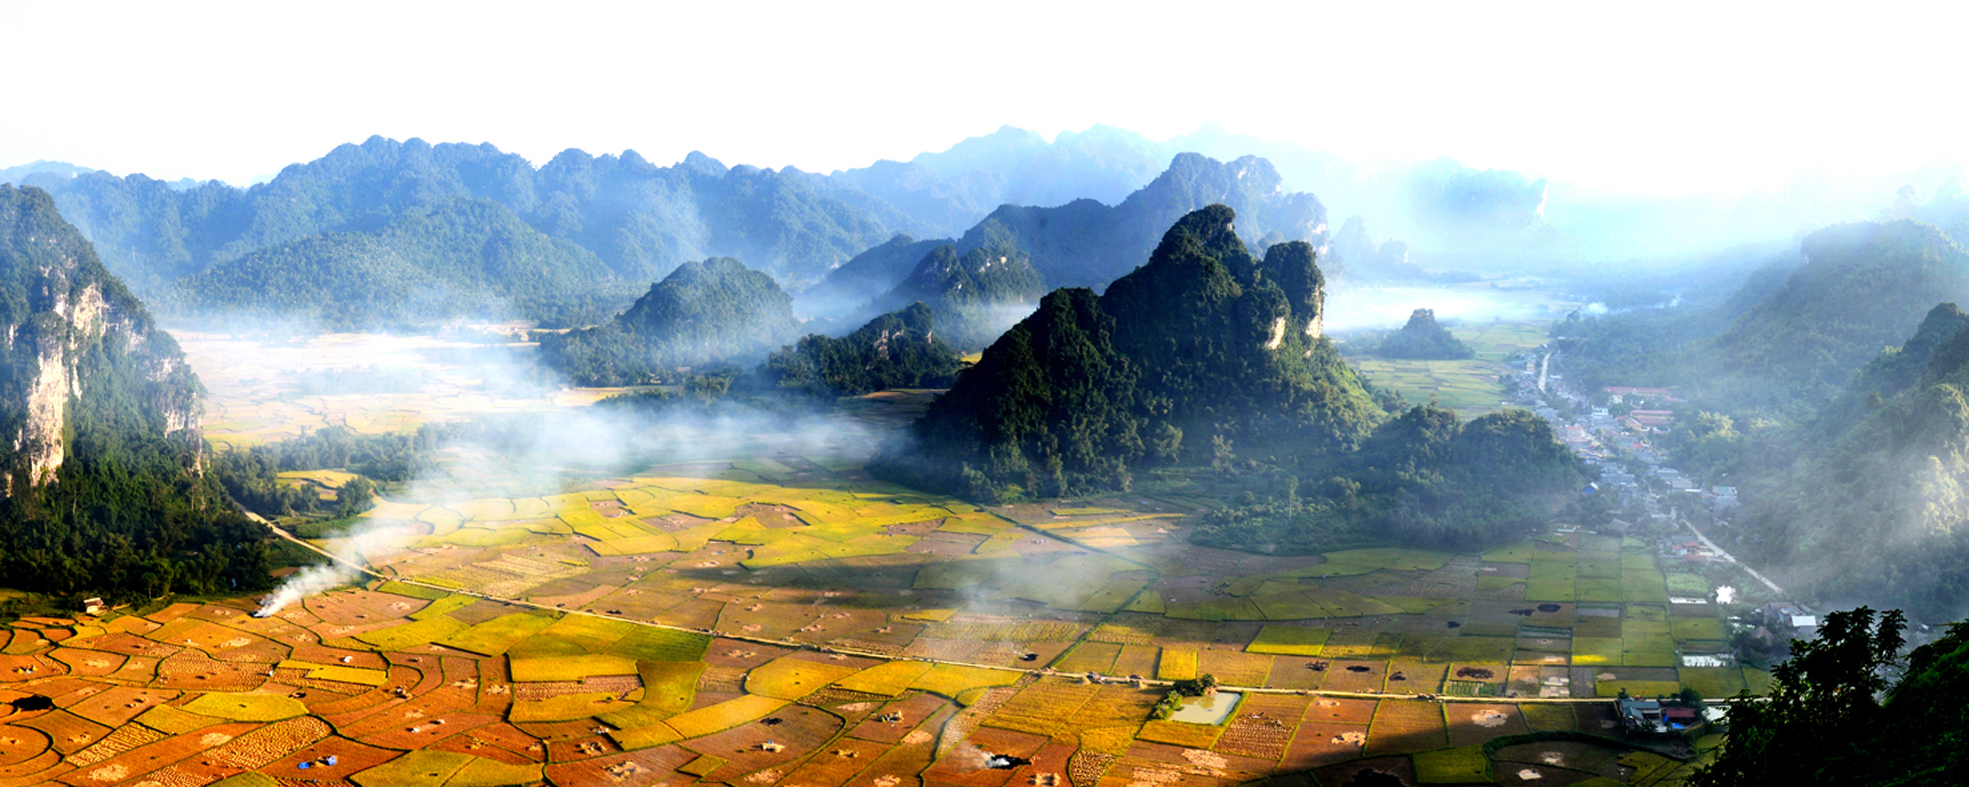 Tuyen Quang landscape photos - Ha The Do